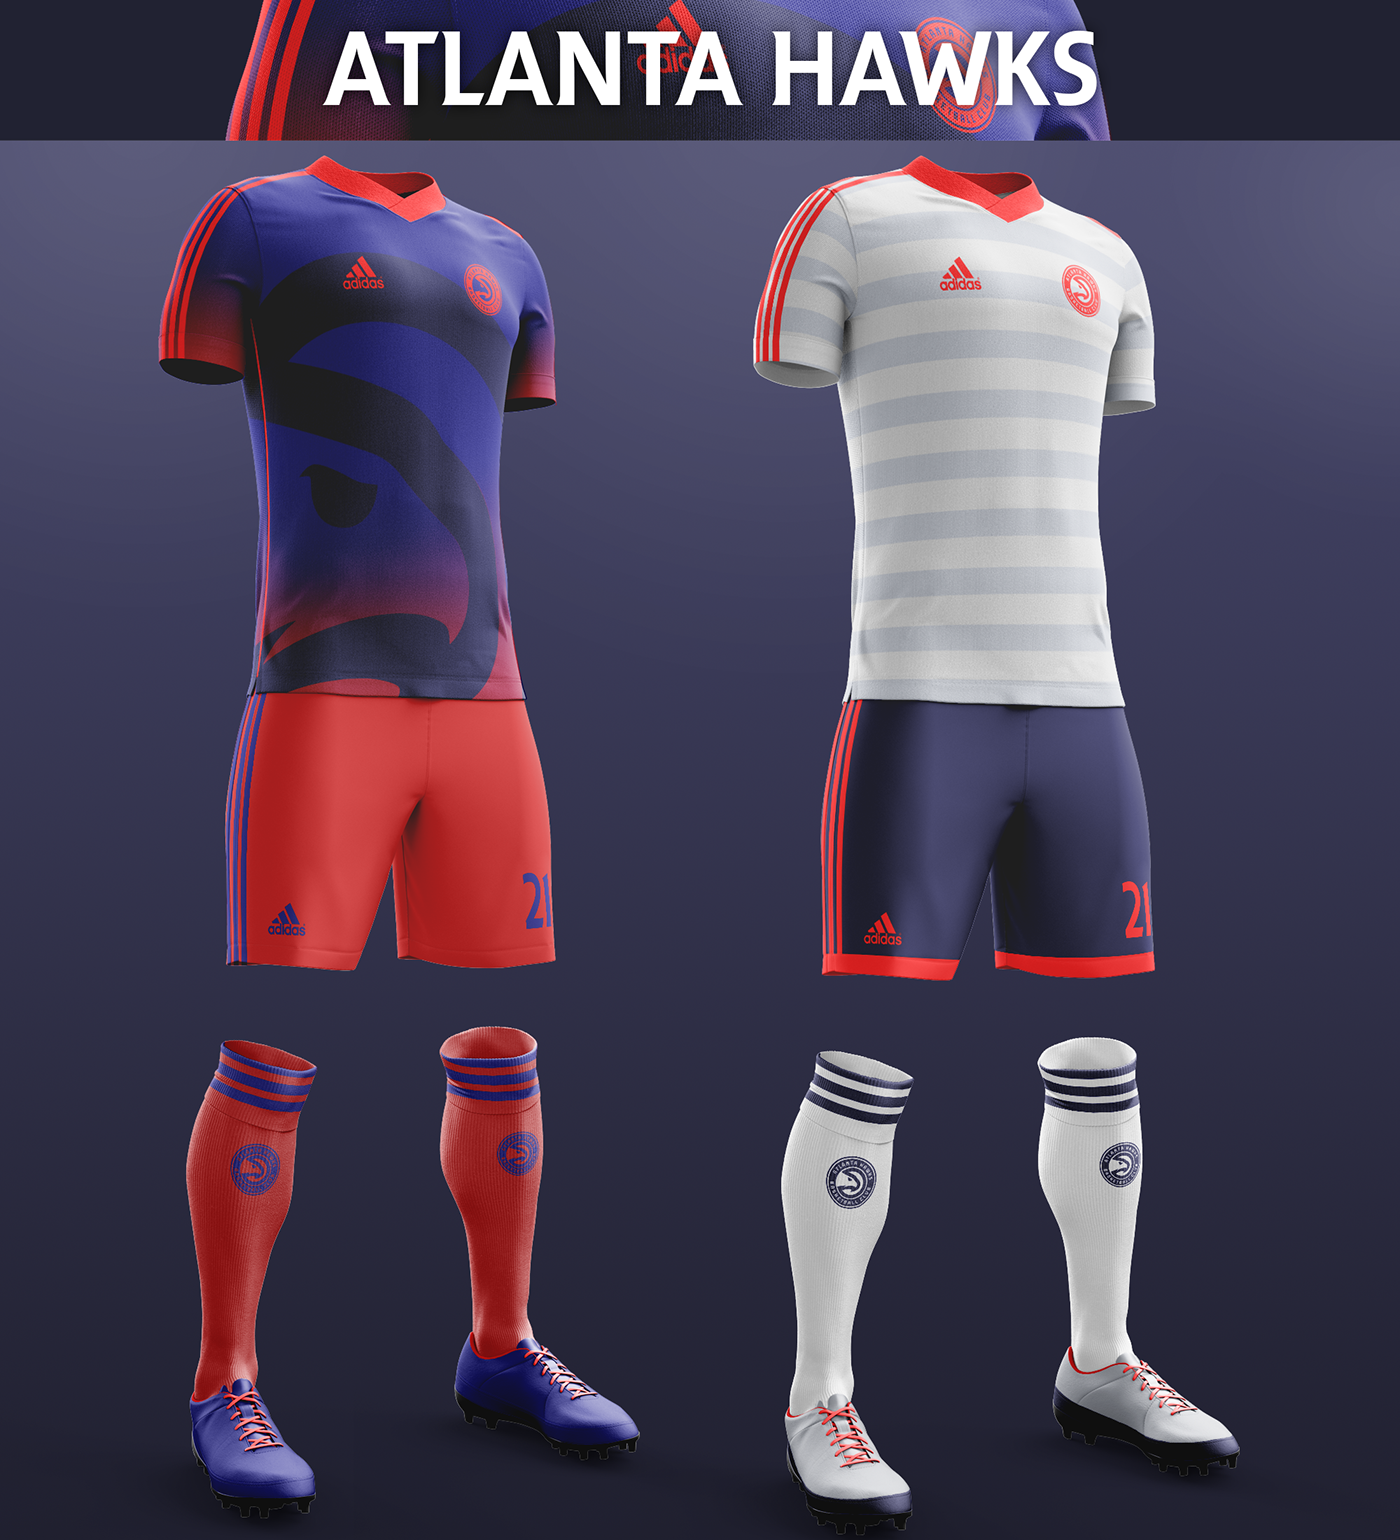 bfb561da198 NBA Football Kit Concepts by Alexandre De Sève